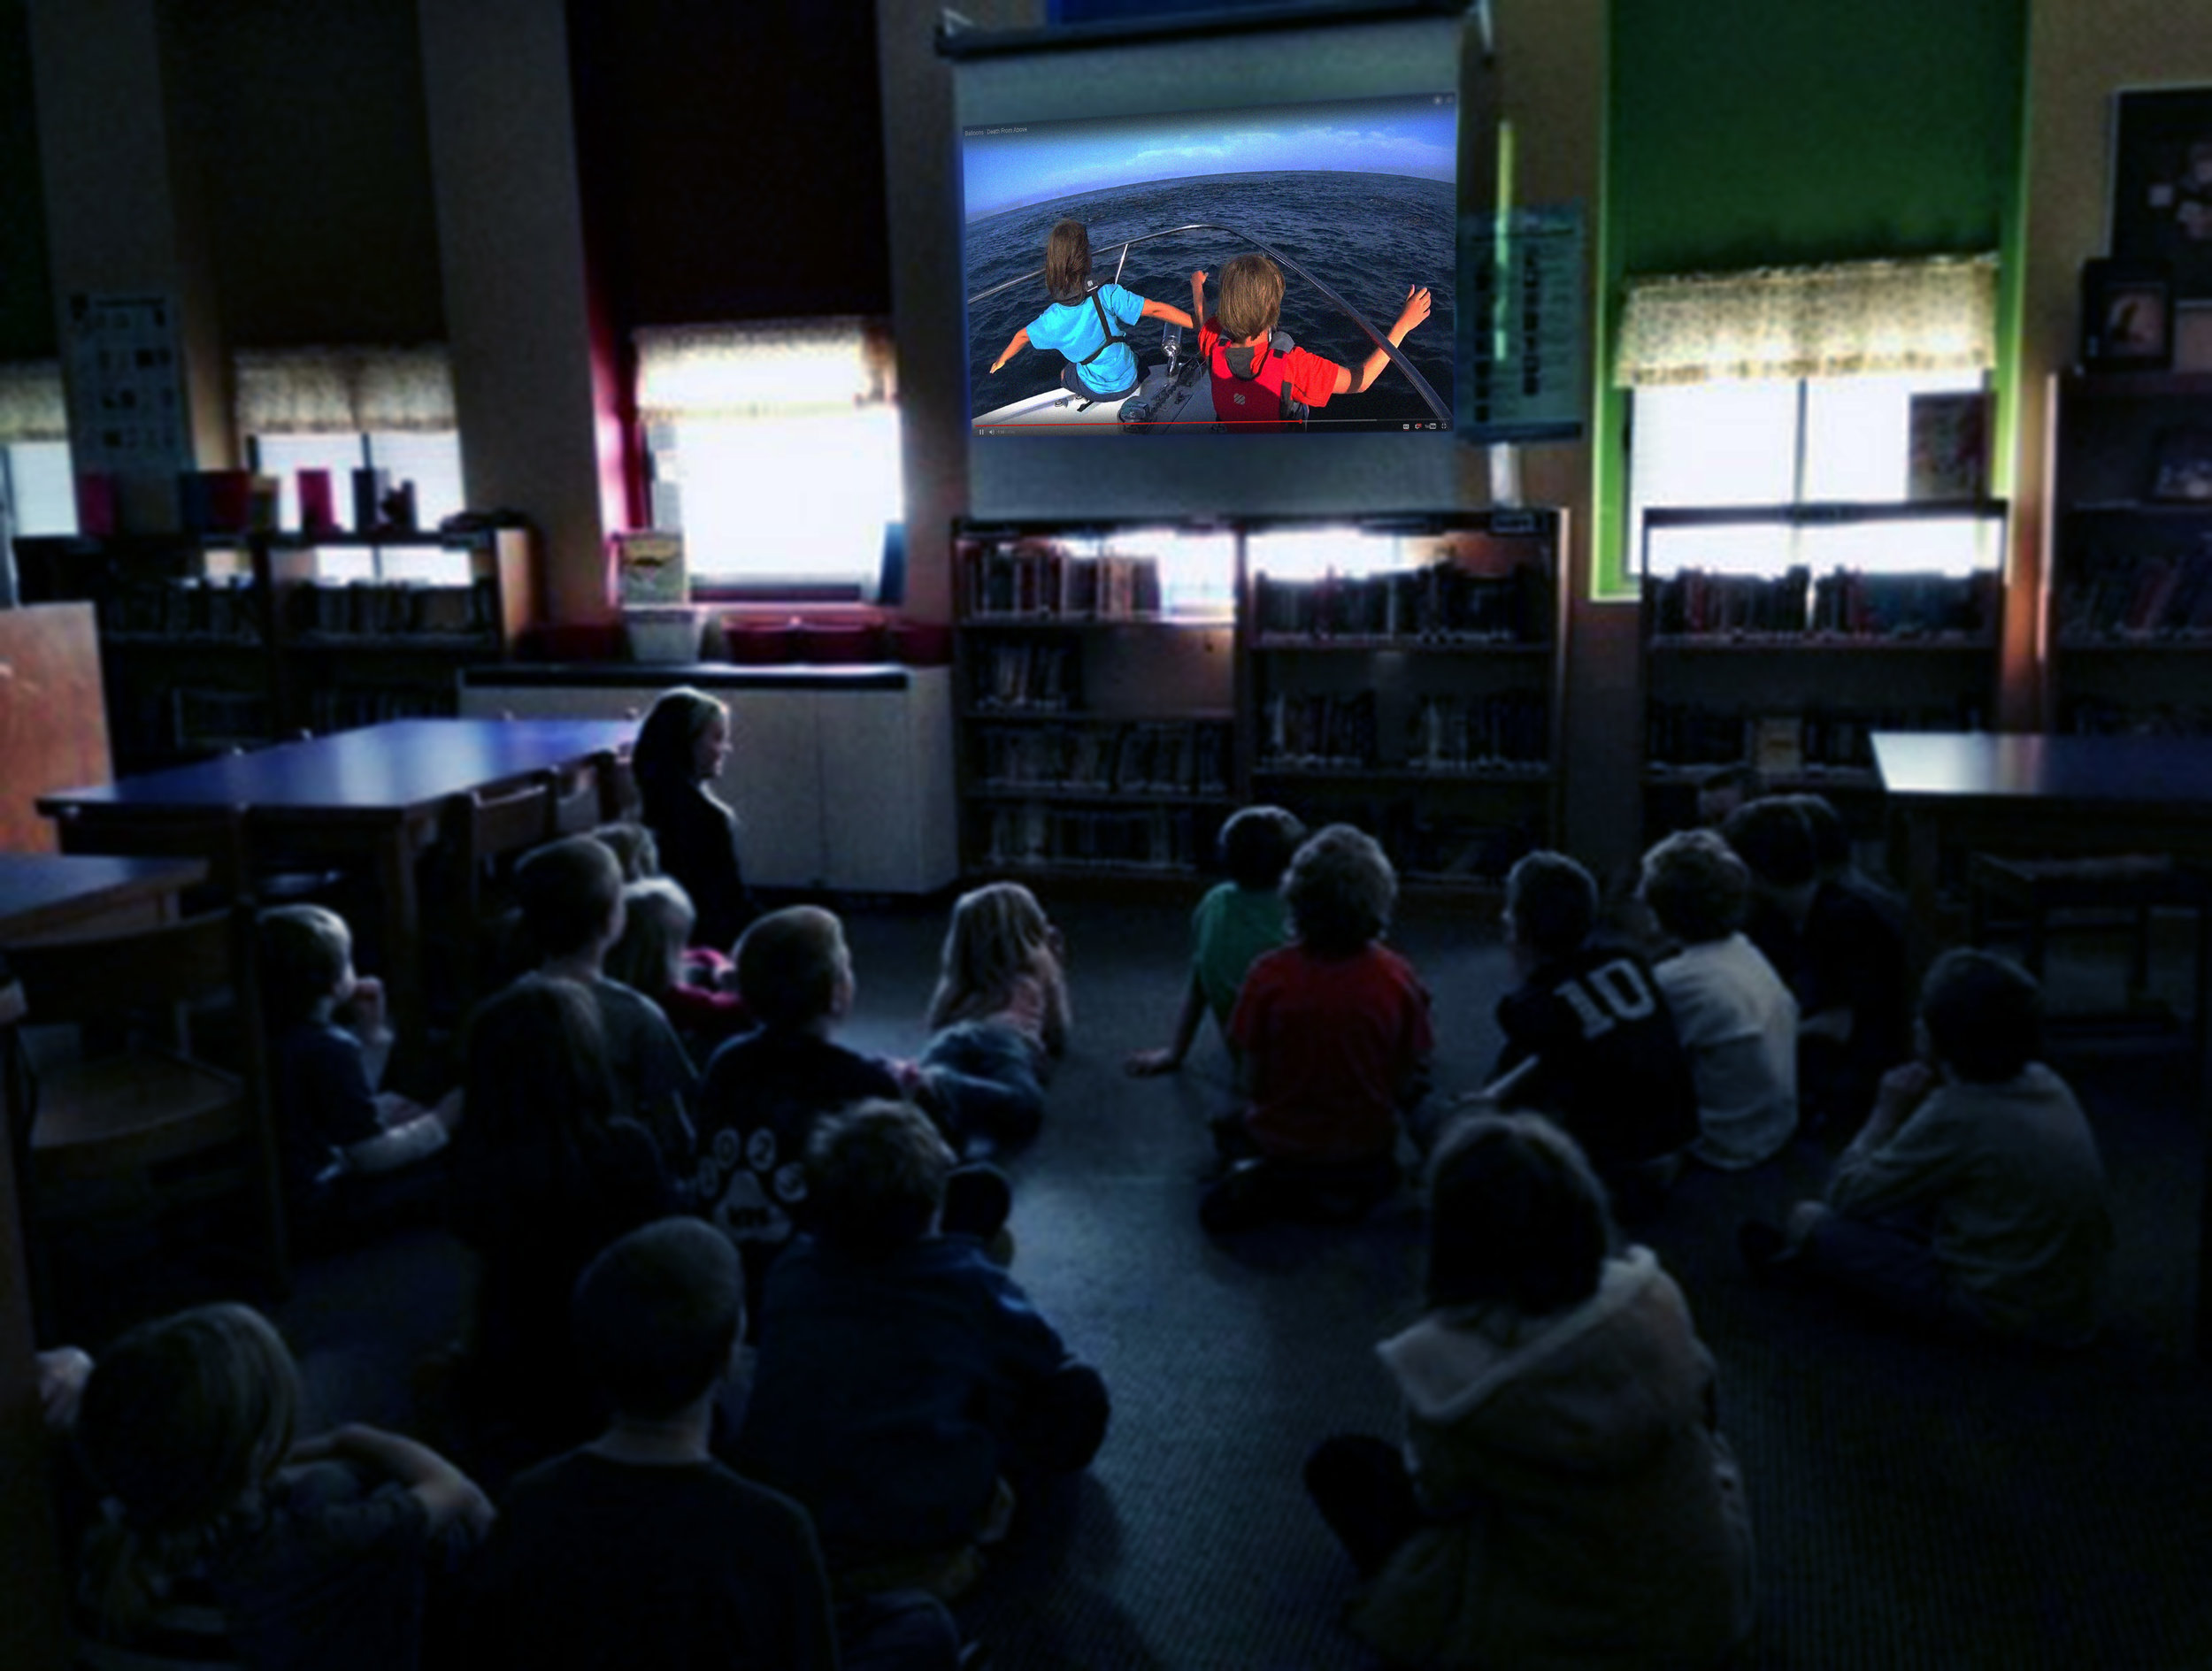 Movie Time - These 8 to 10 minute films are distributed to our network of school classrooms and educational outlets.